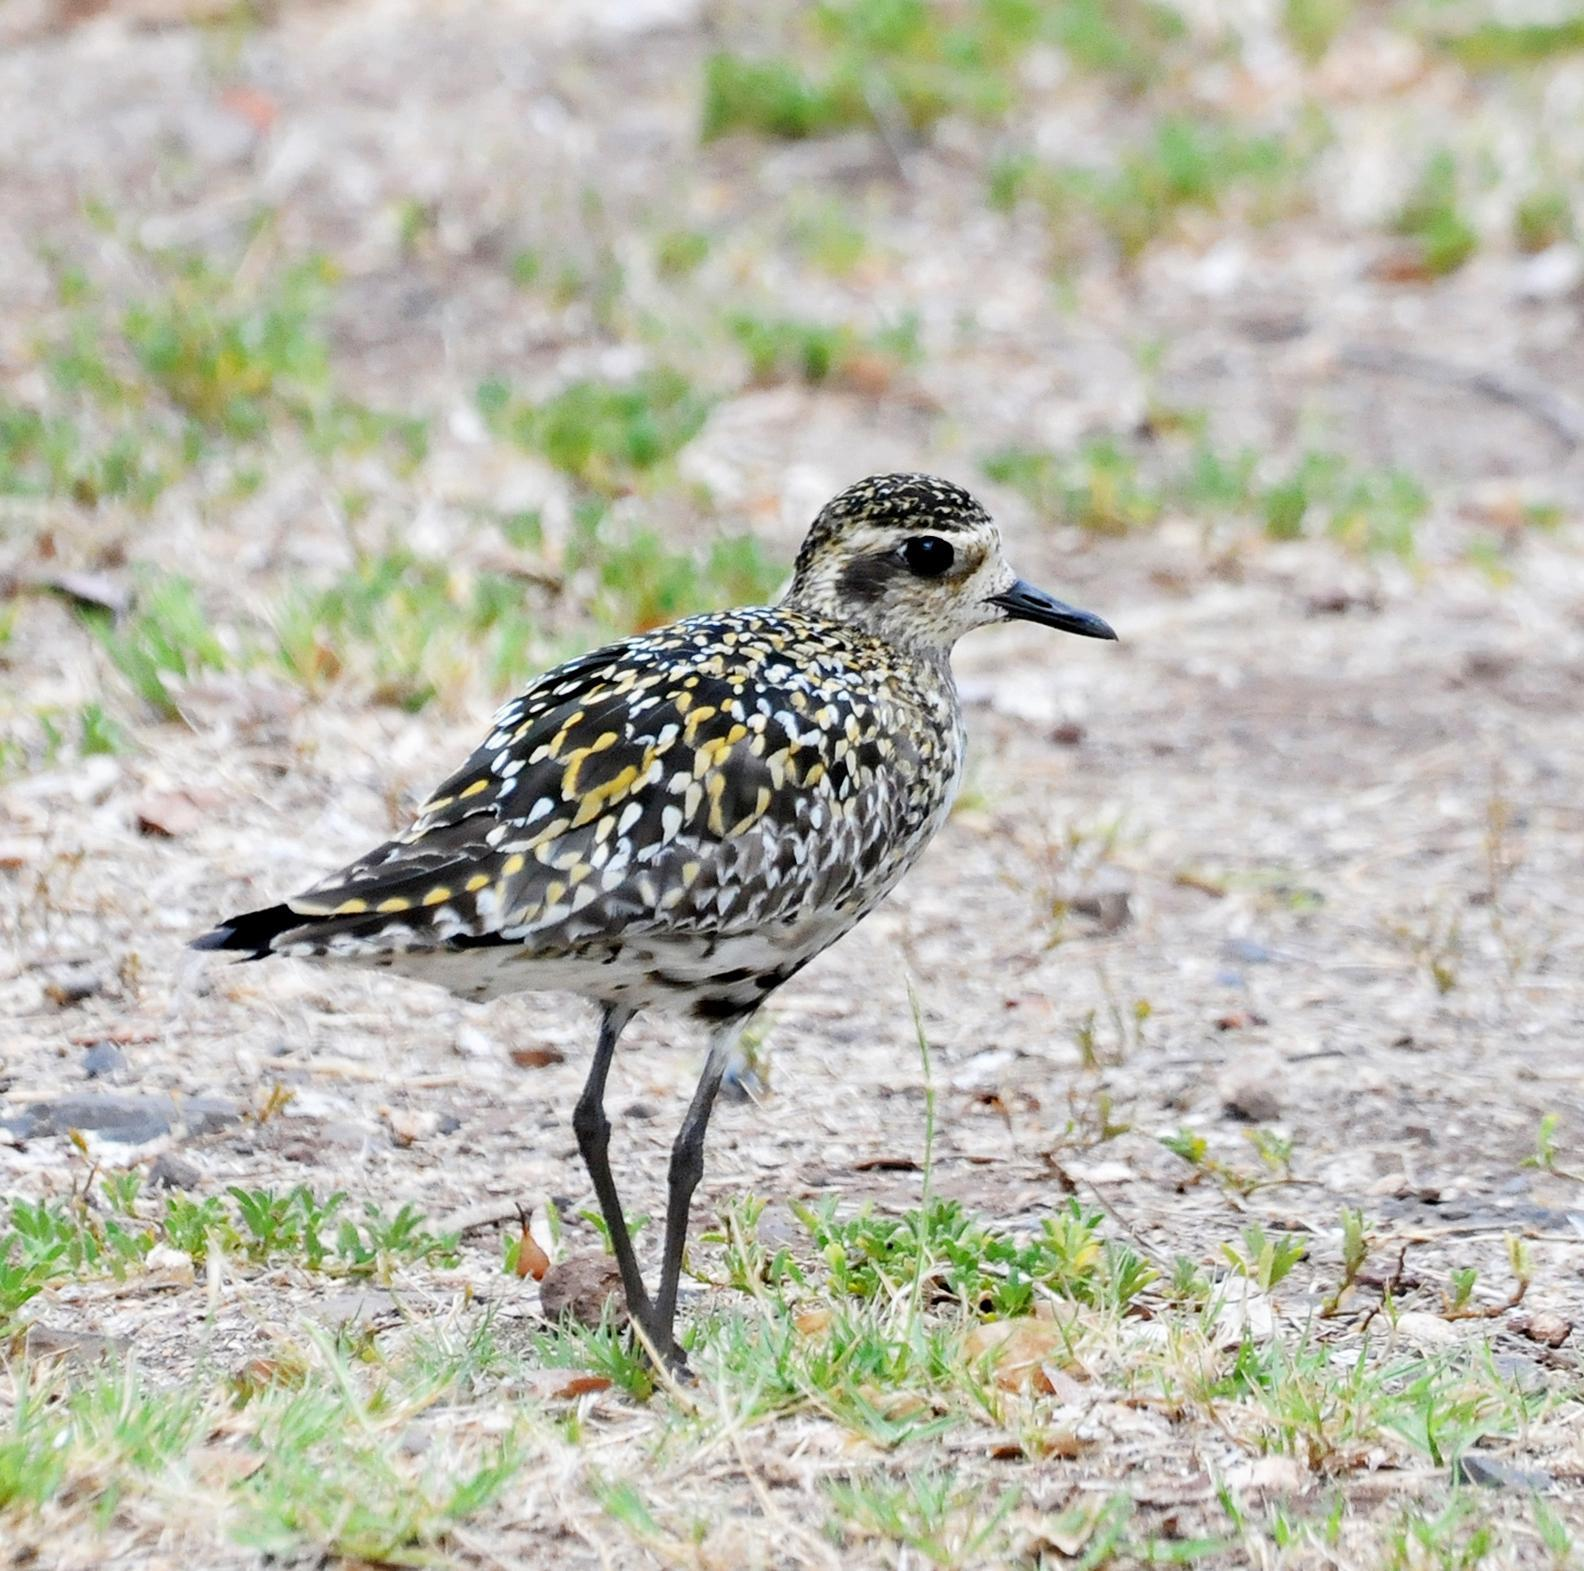 Pacific Golden-Plover Photo by Steven Mlodinow